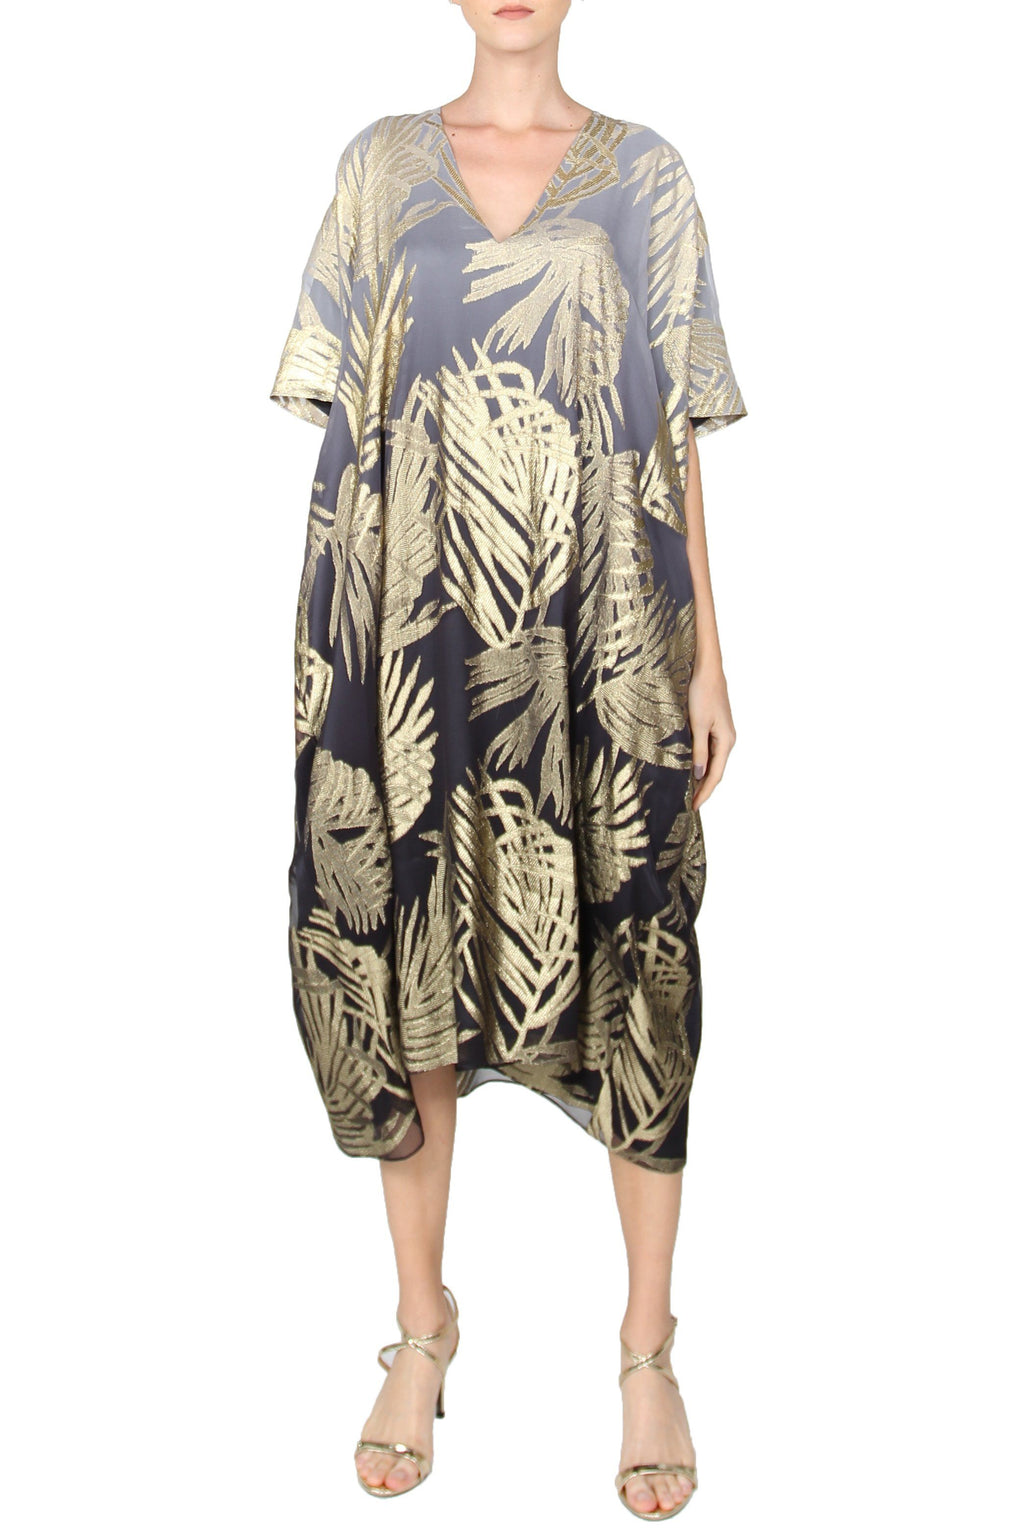 Palm Midi Metallic BouBou Marie France Van Damme One Size Black Gold Ombre